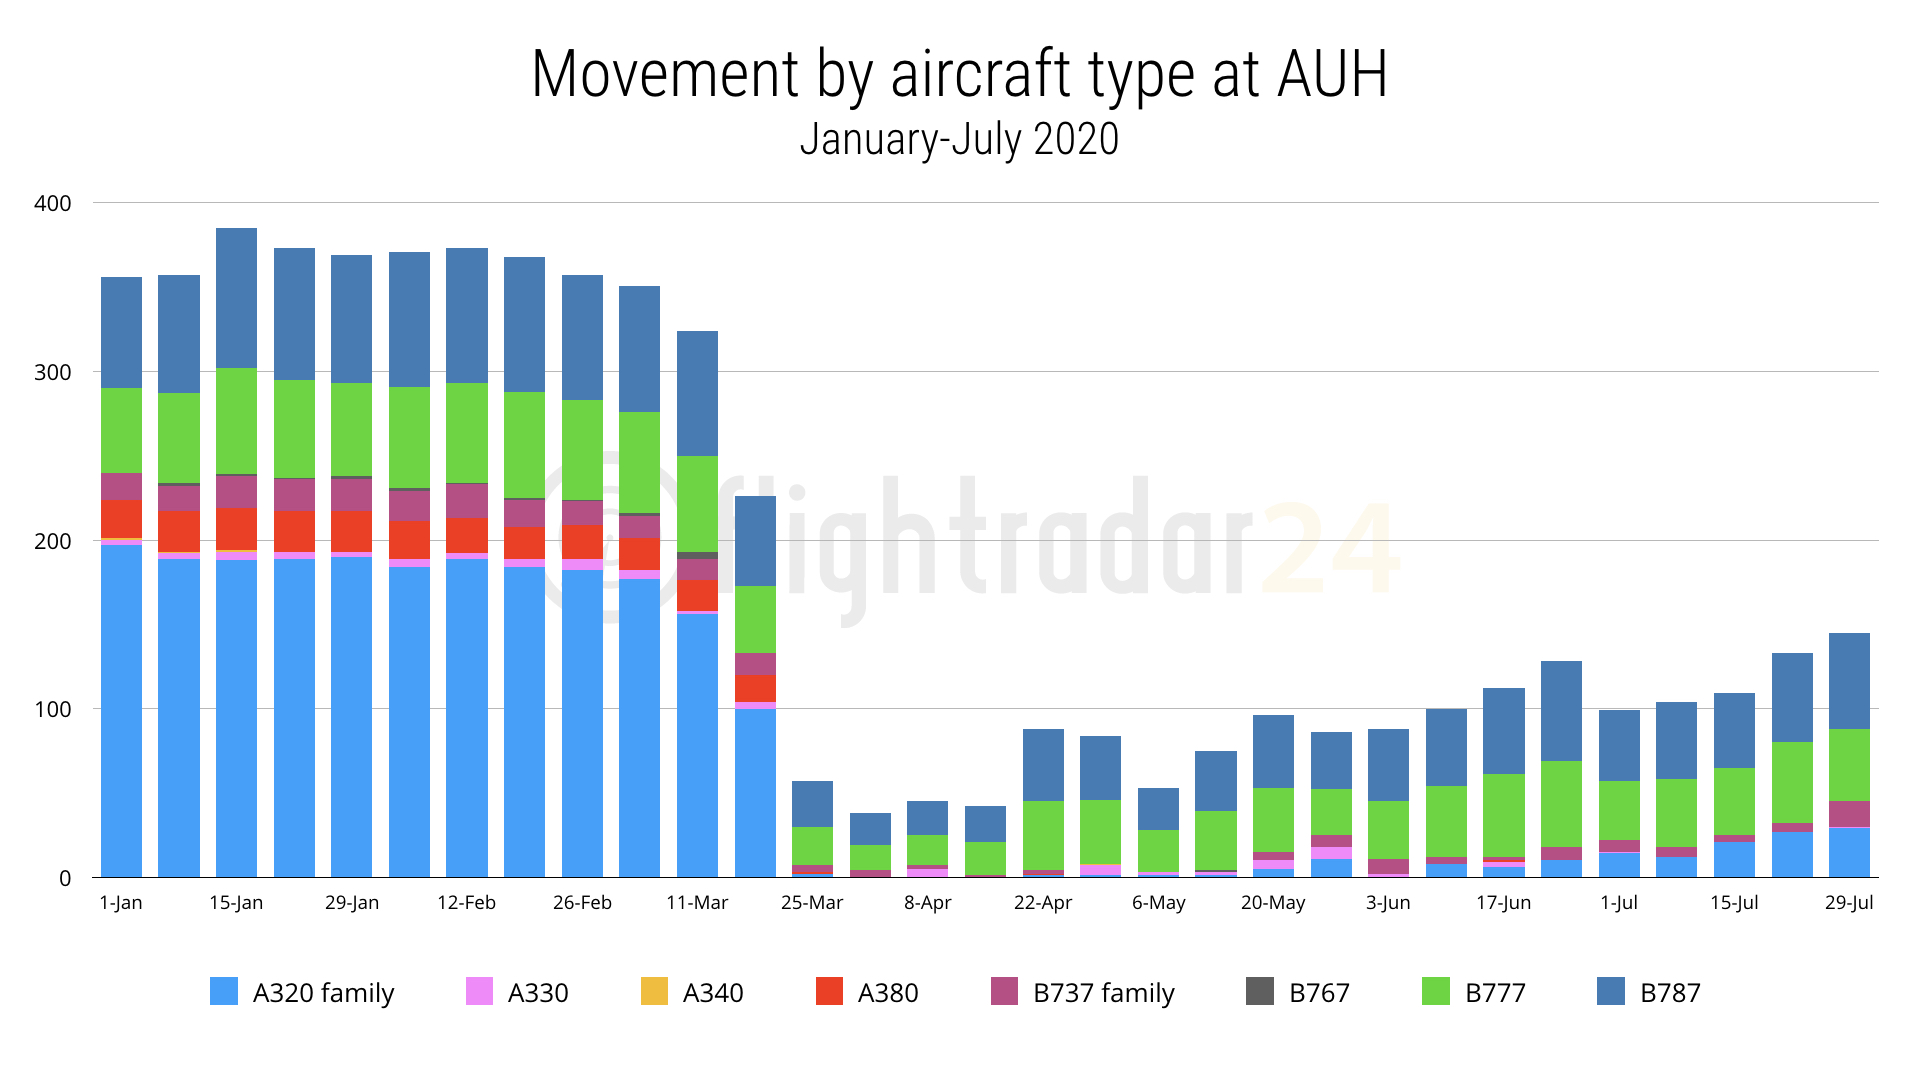 AUH Flights by Aircraft Type